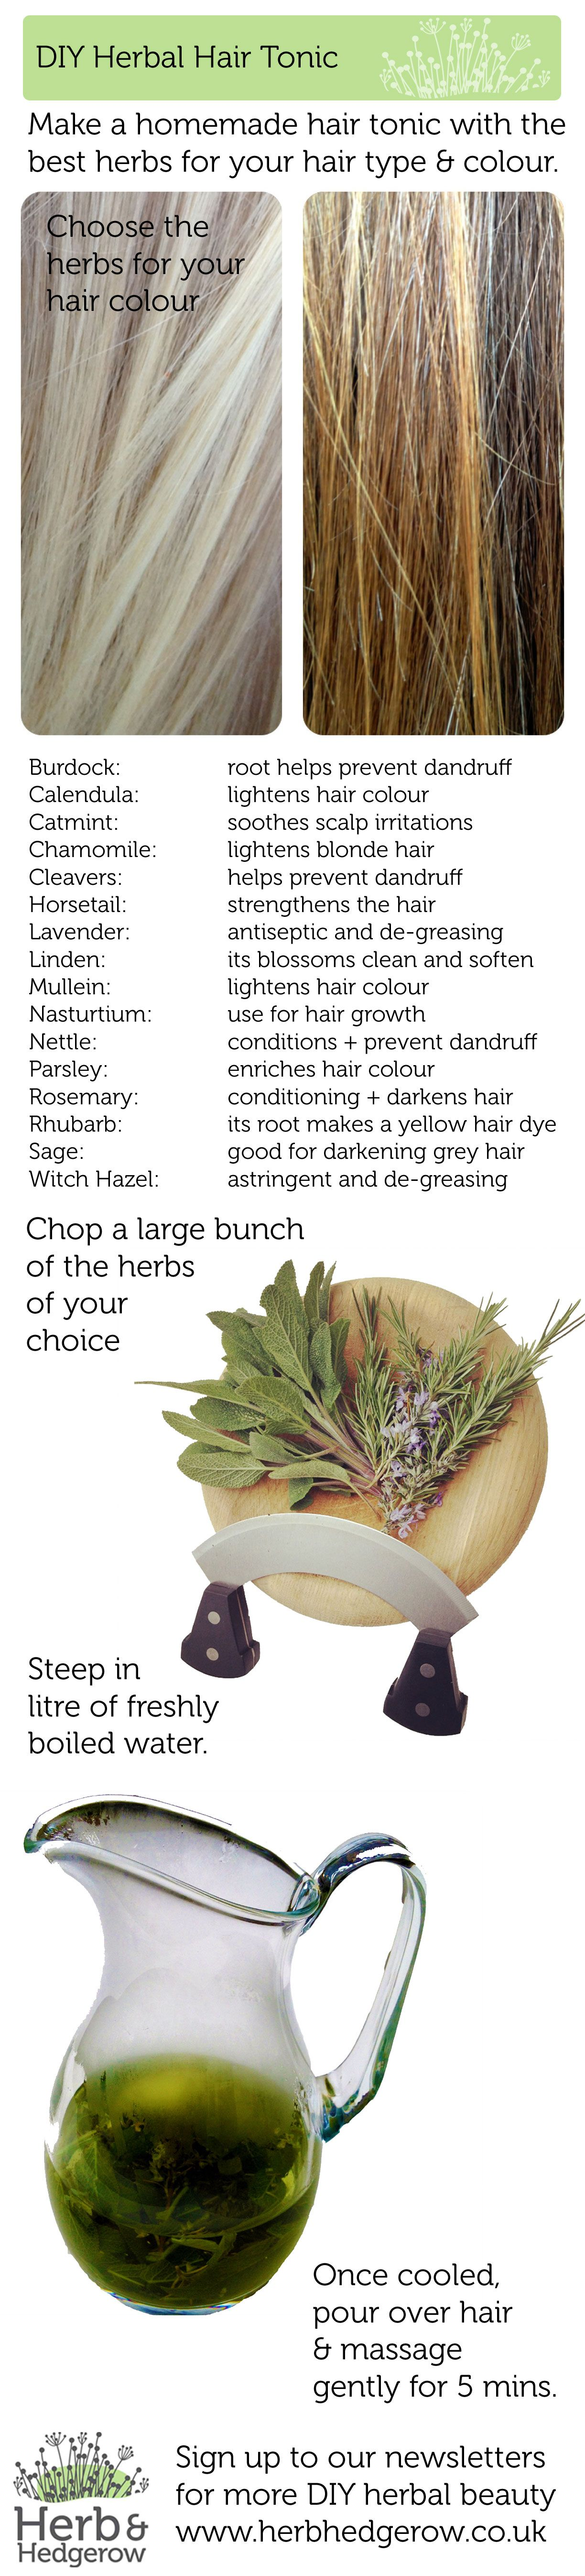 Herbal Hair Tonic Make Your Own Homemade Diy Beauty Recipes And